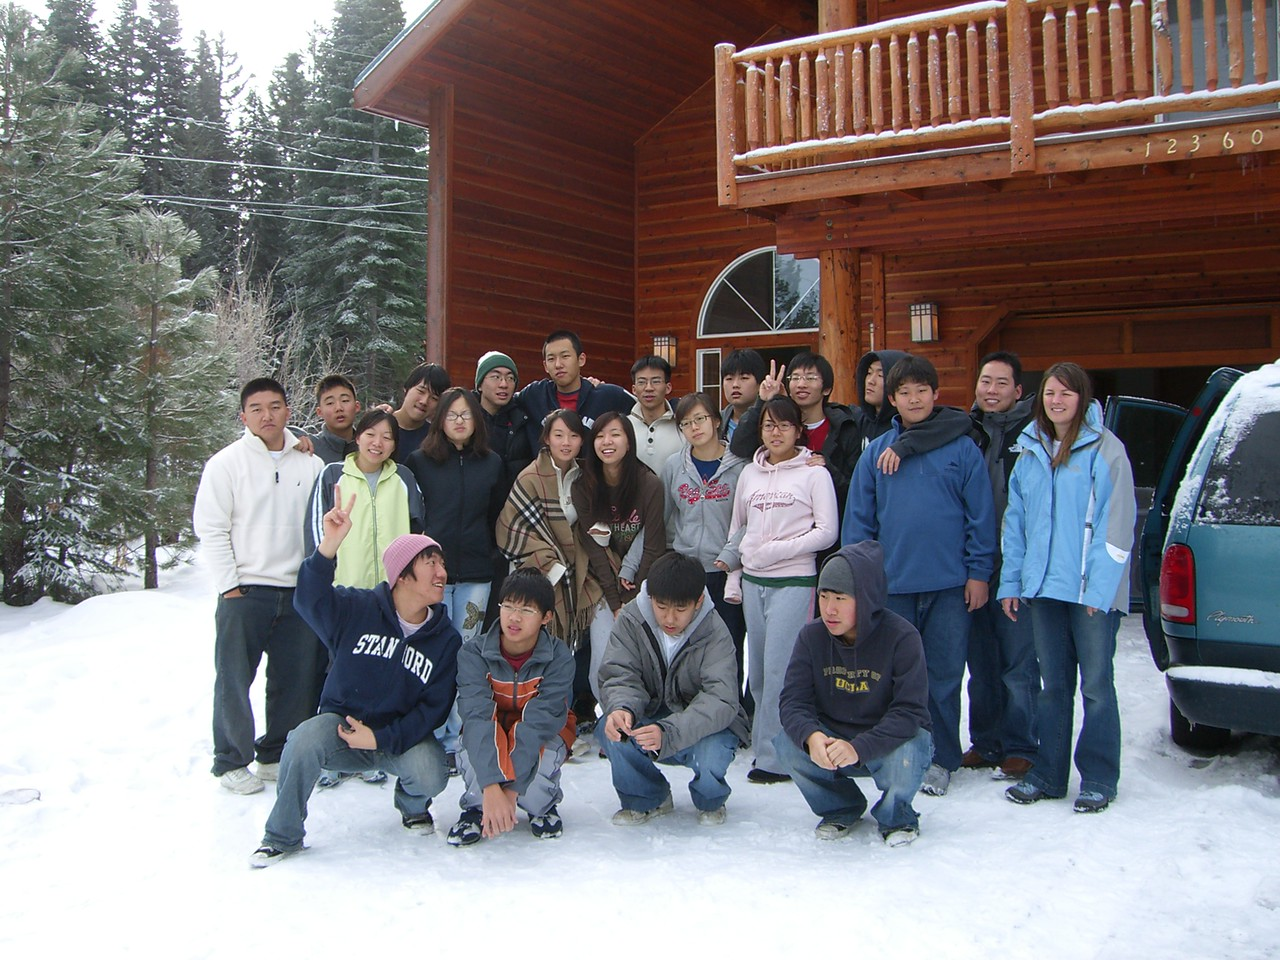 2005 12 29 Thu - End of retreat group pic 3